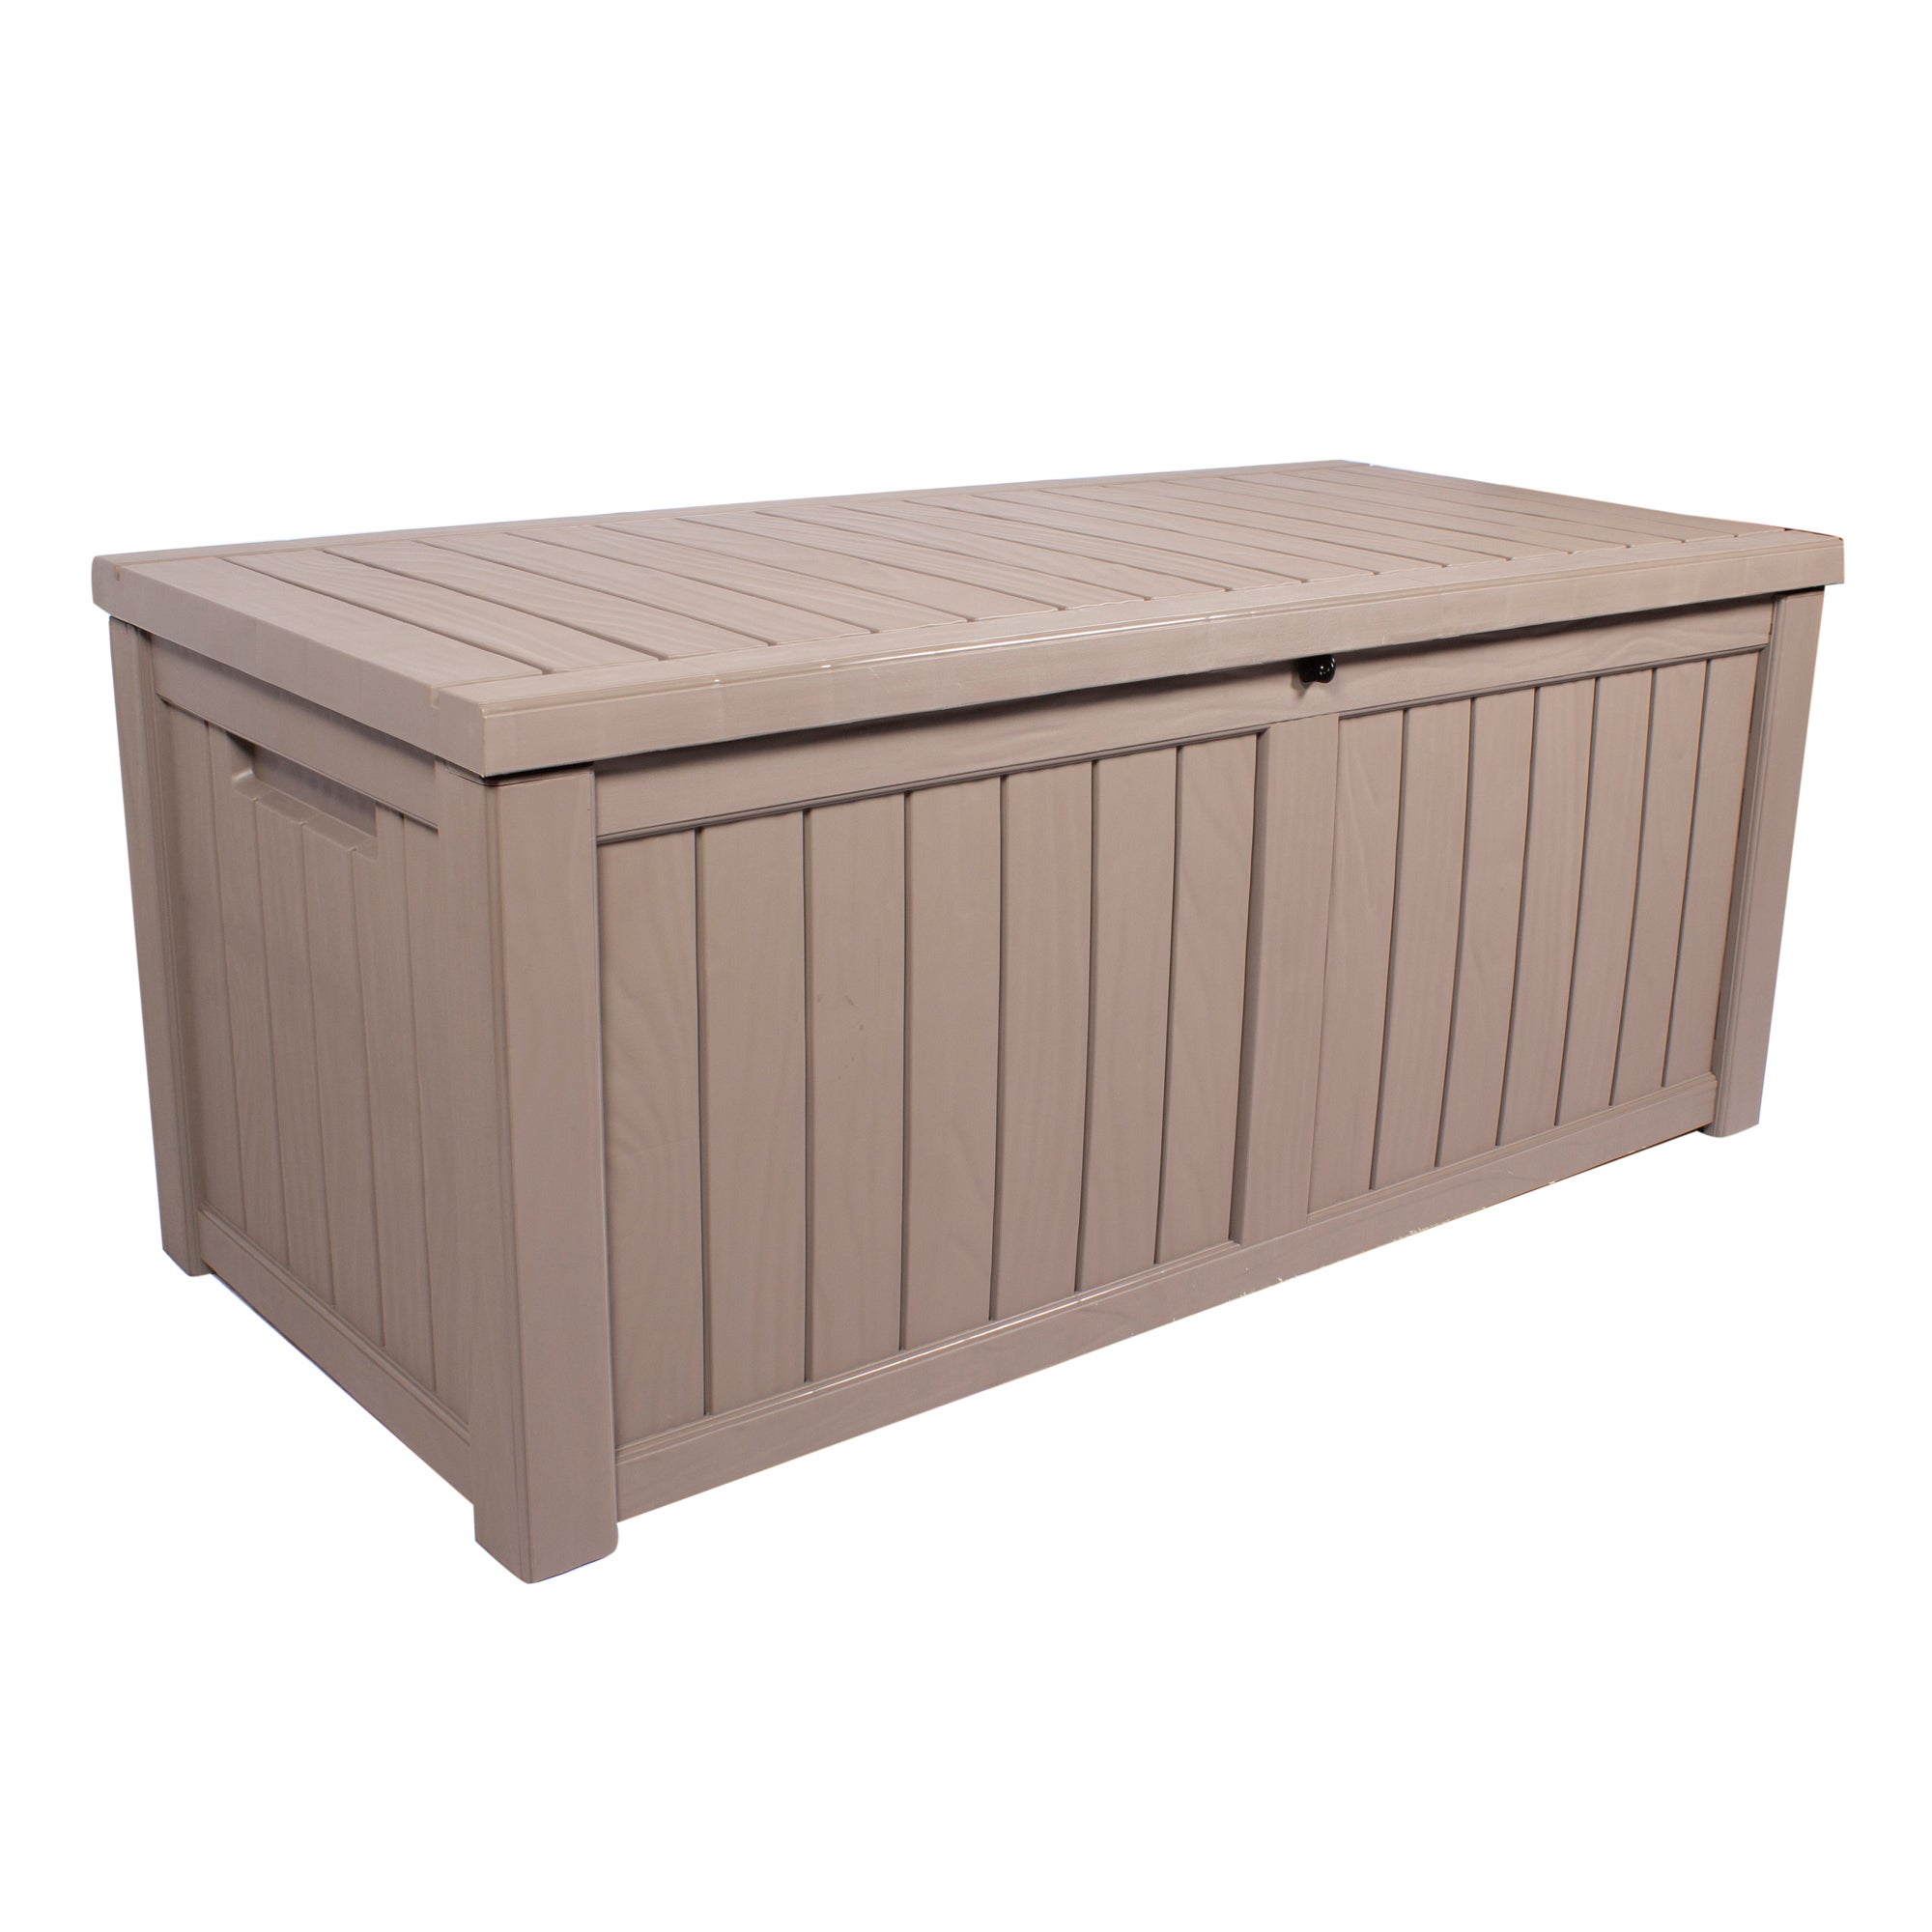 Dunelm Grey Deluxe Waterproof Outdoor Storage Box with Double Gas Lift Grey Large